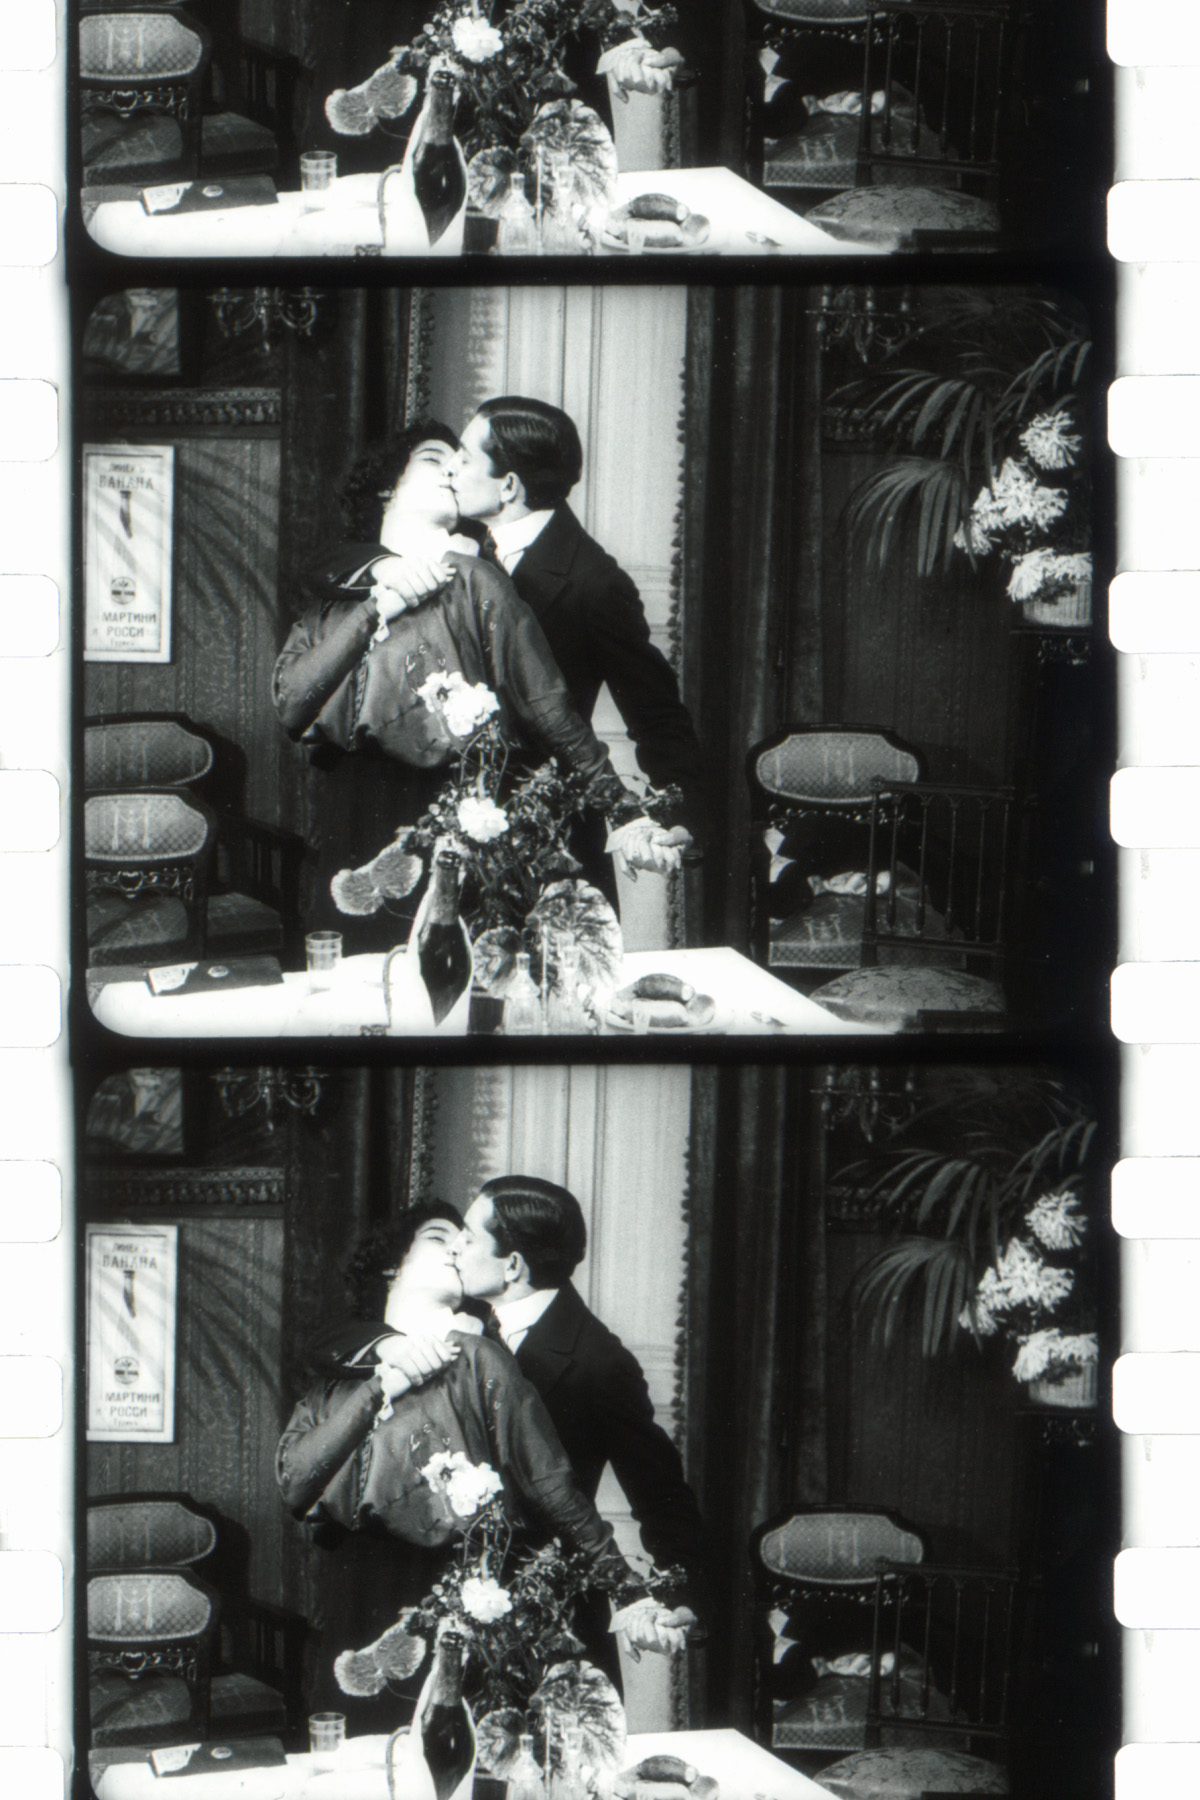 still from the film Child of the Big City